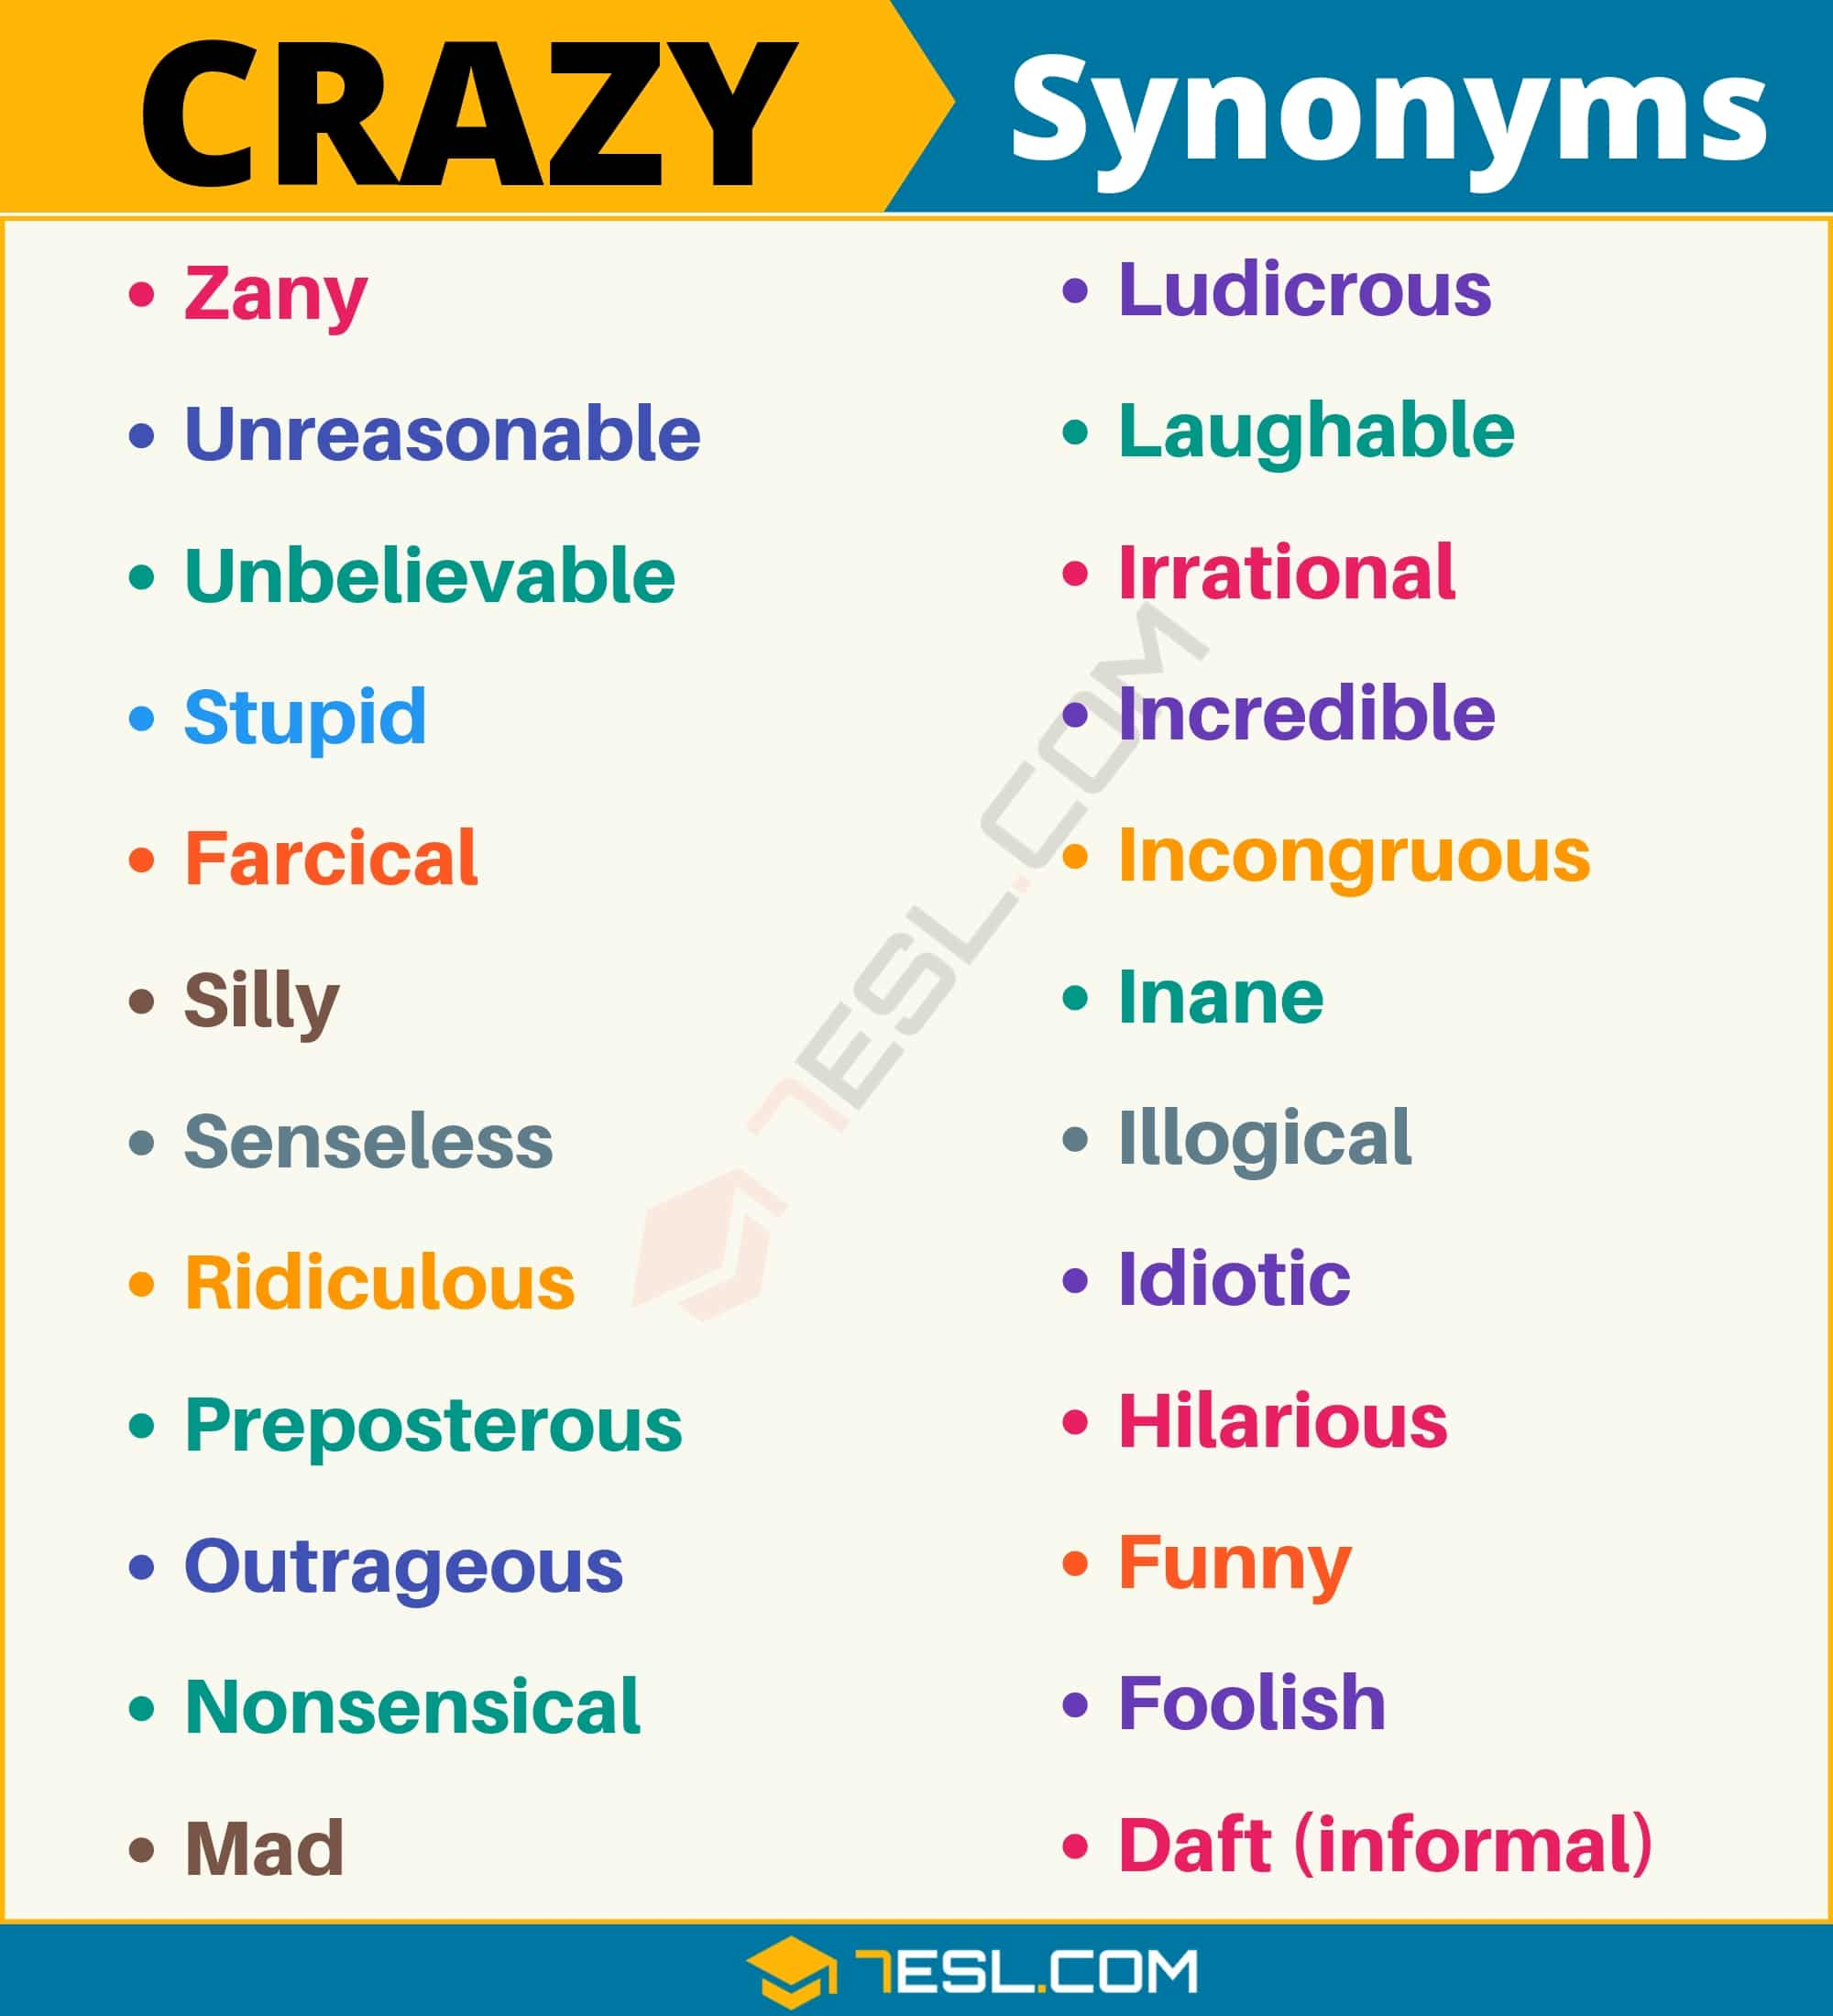 CRAZY Synonym: List of 24 Synonyms for Crazy with Examples